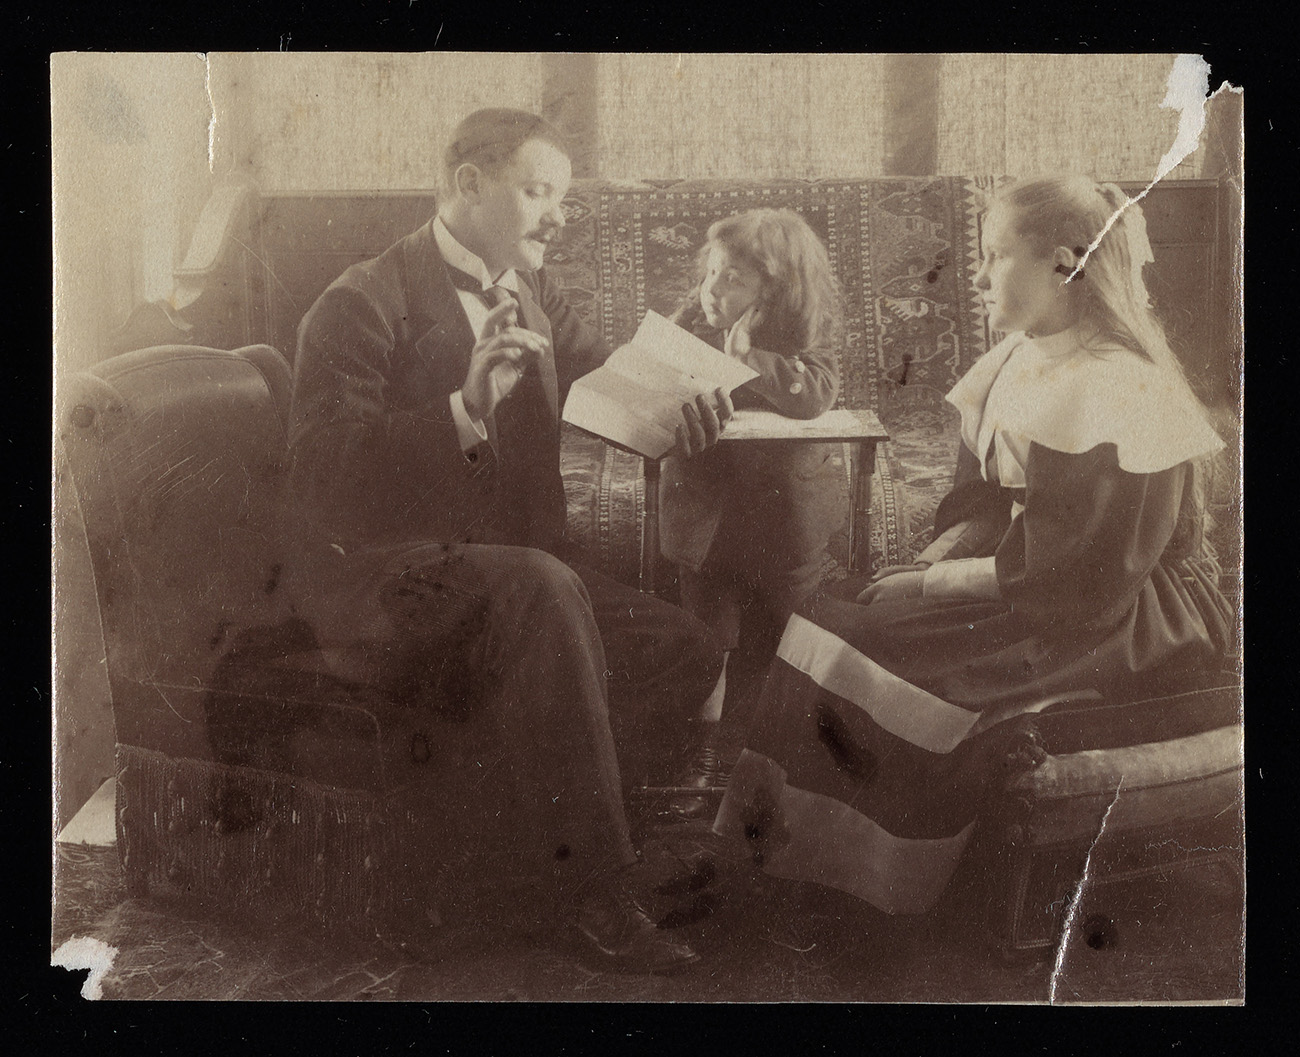 Man reading to his two daughters. The print is aged, bent and torn in a few locations.